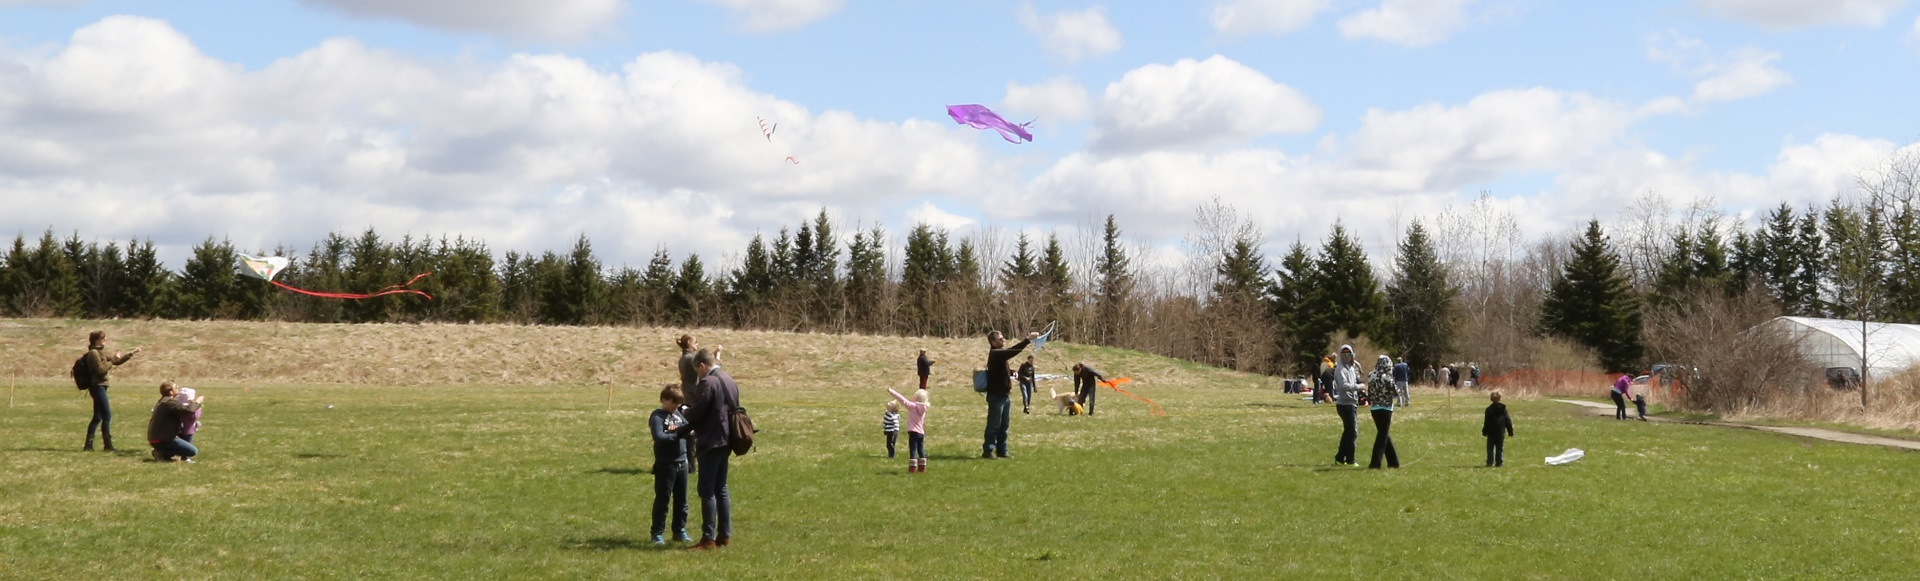 Four Winds Kite Festival at Kortright Centre